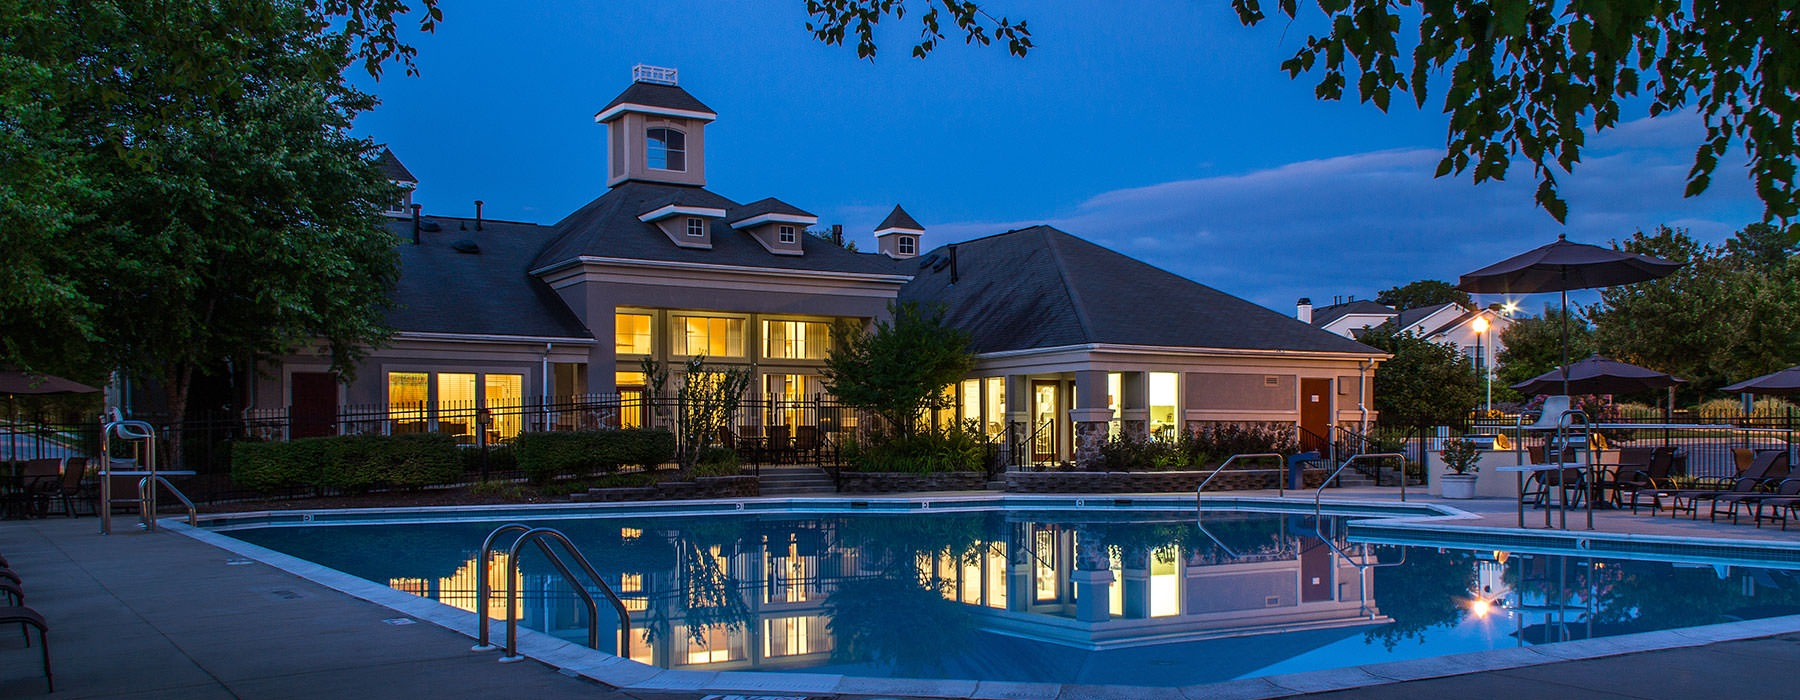 swimming pool at night showing reflection of well-lit property